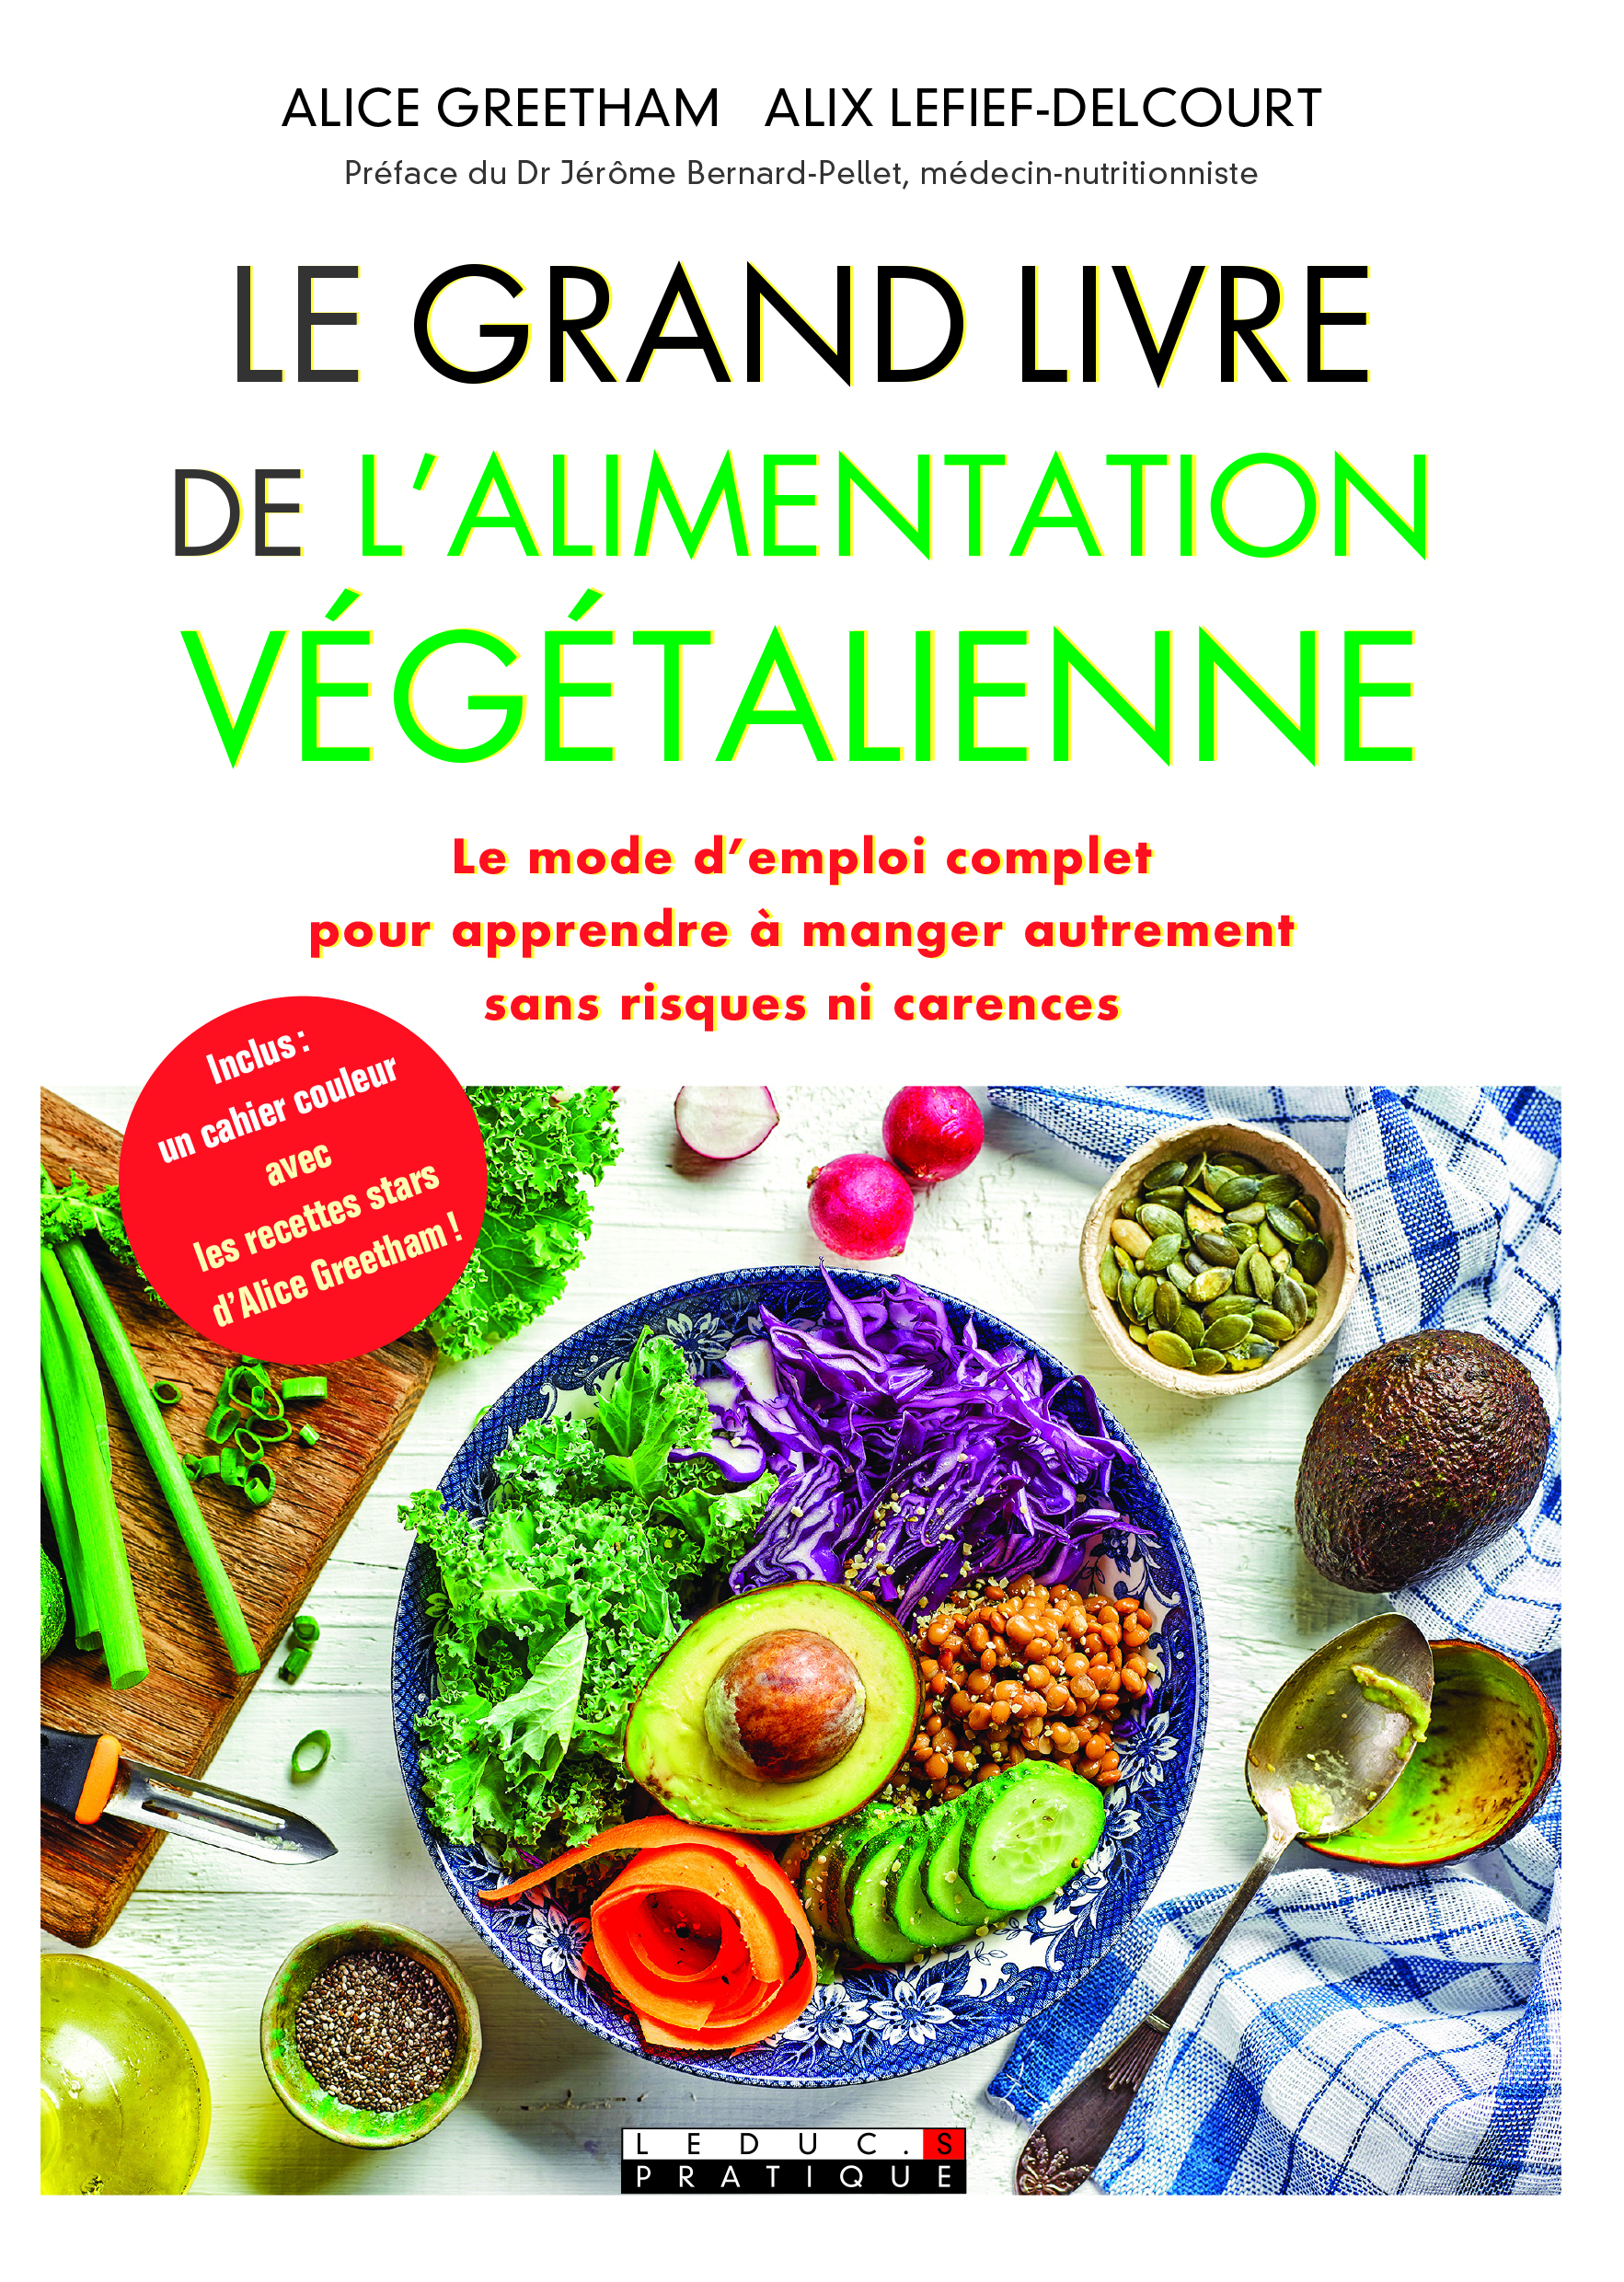 GRAND LIVRE DE L'ALIMENTATION VEGETALIENNE (LE)